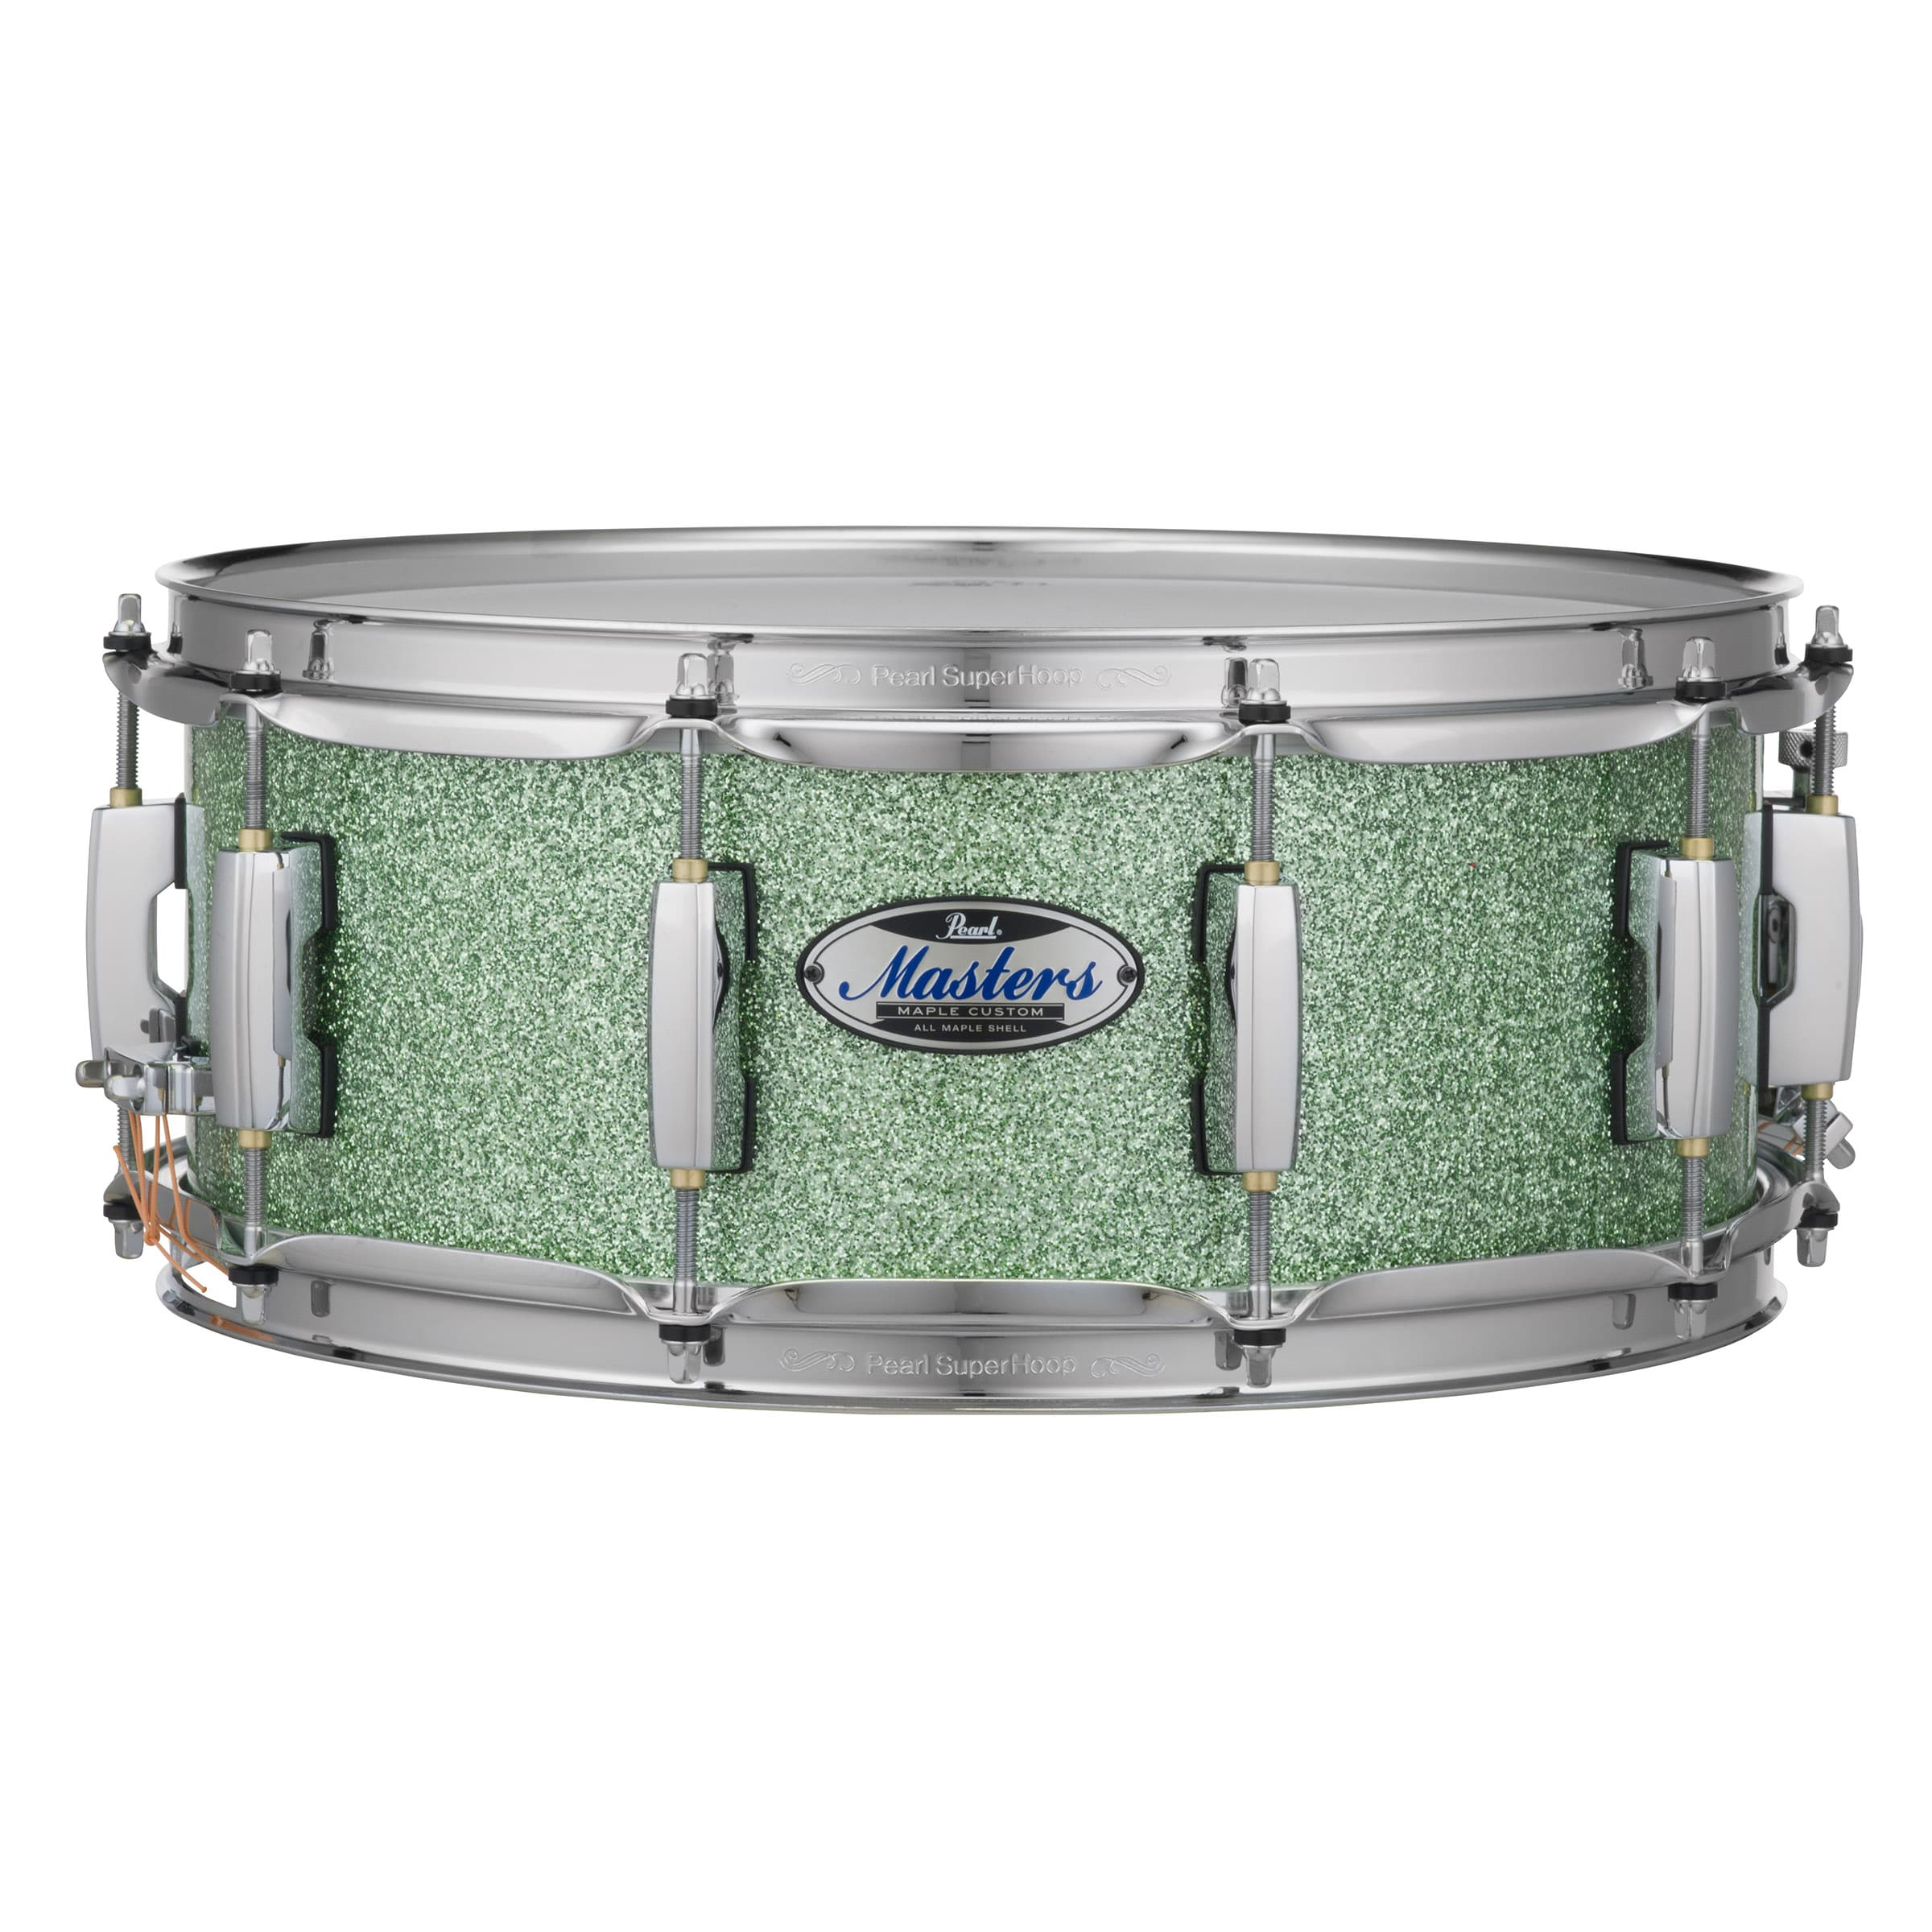 """Pearl Masters Maple Complete Snare Drum - 14 x 6.5"""", Absinthe Sparkle"""